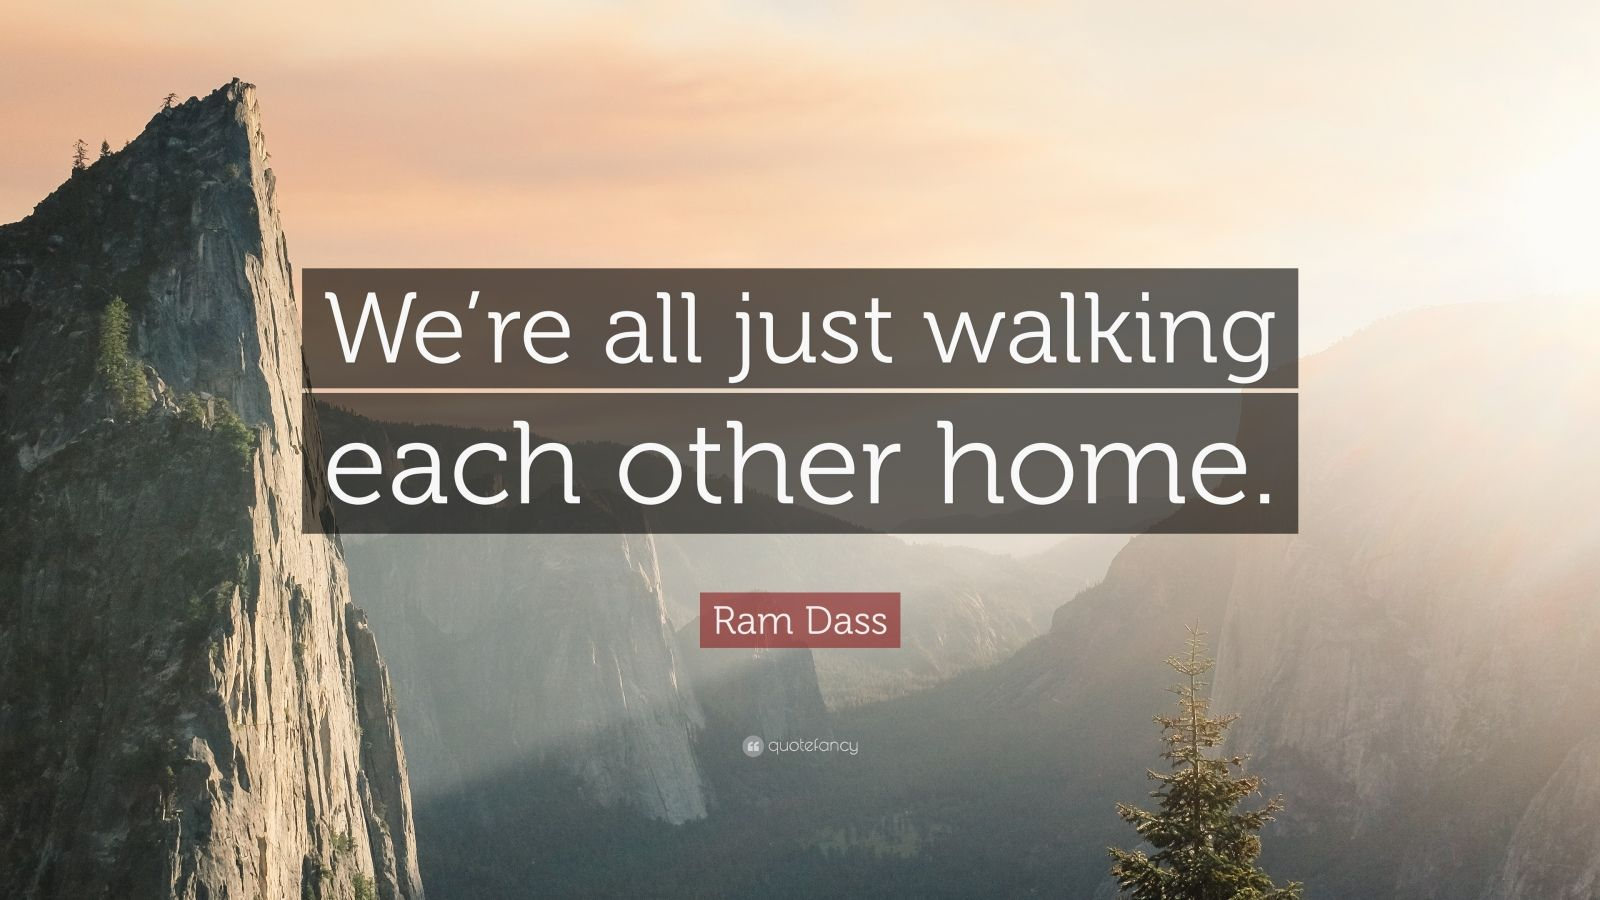 ram dass quote   u201cwe u2019re all just walking each other home  u201d  28 wallpapers